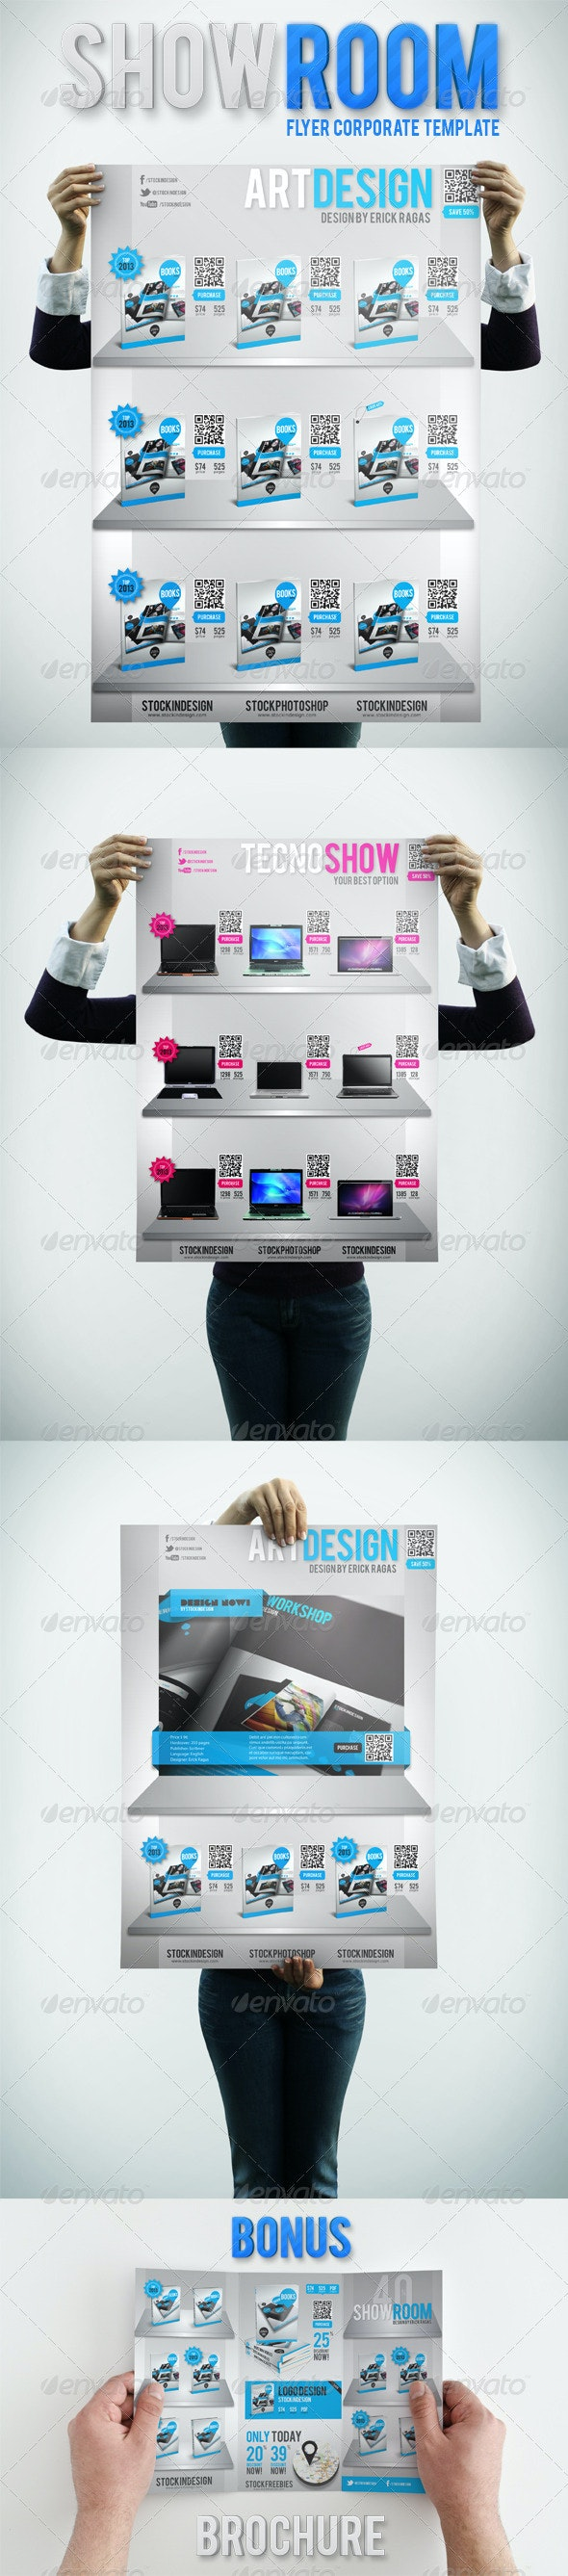 ShowRoom Flyer Corporate Products - Corporate Flyers